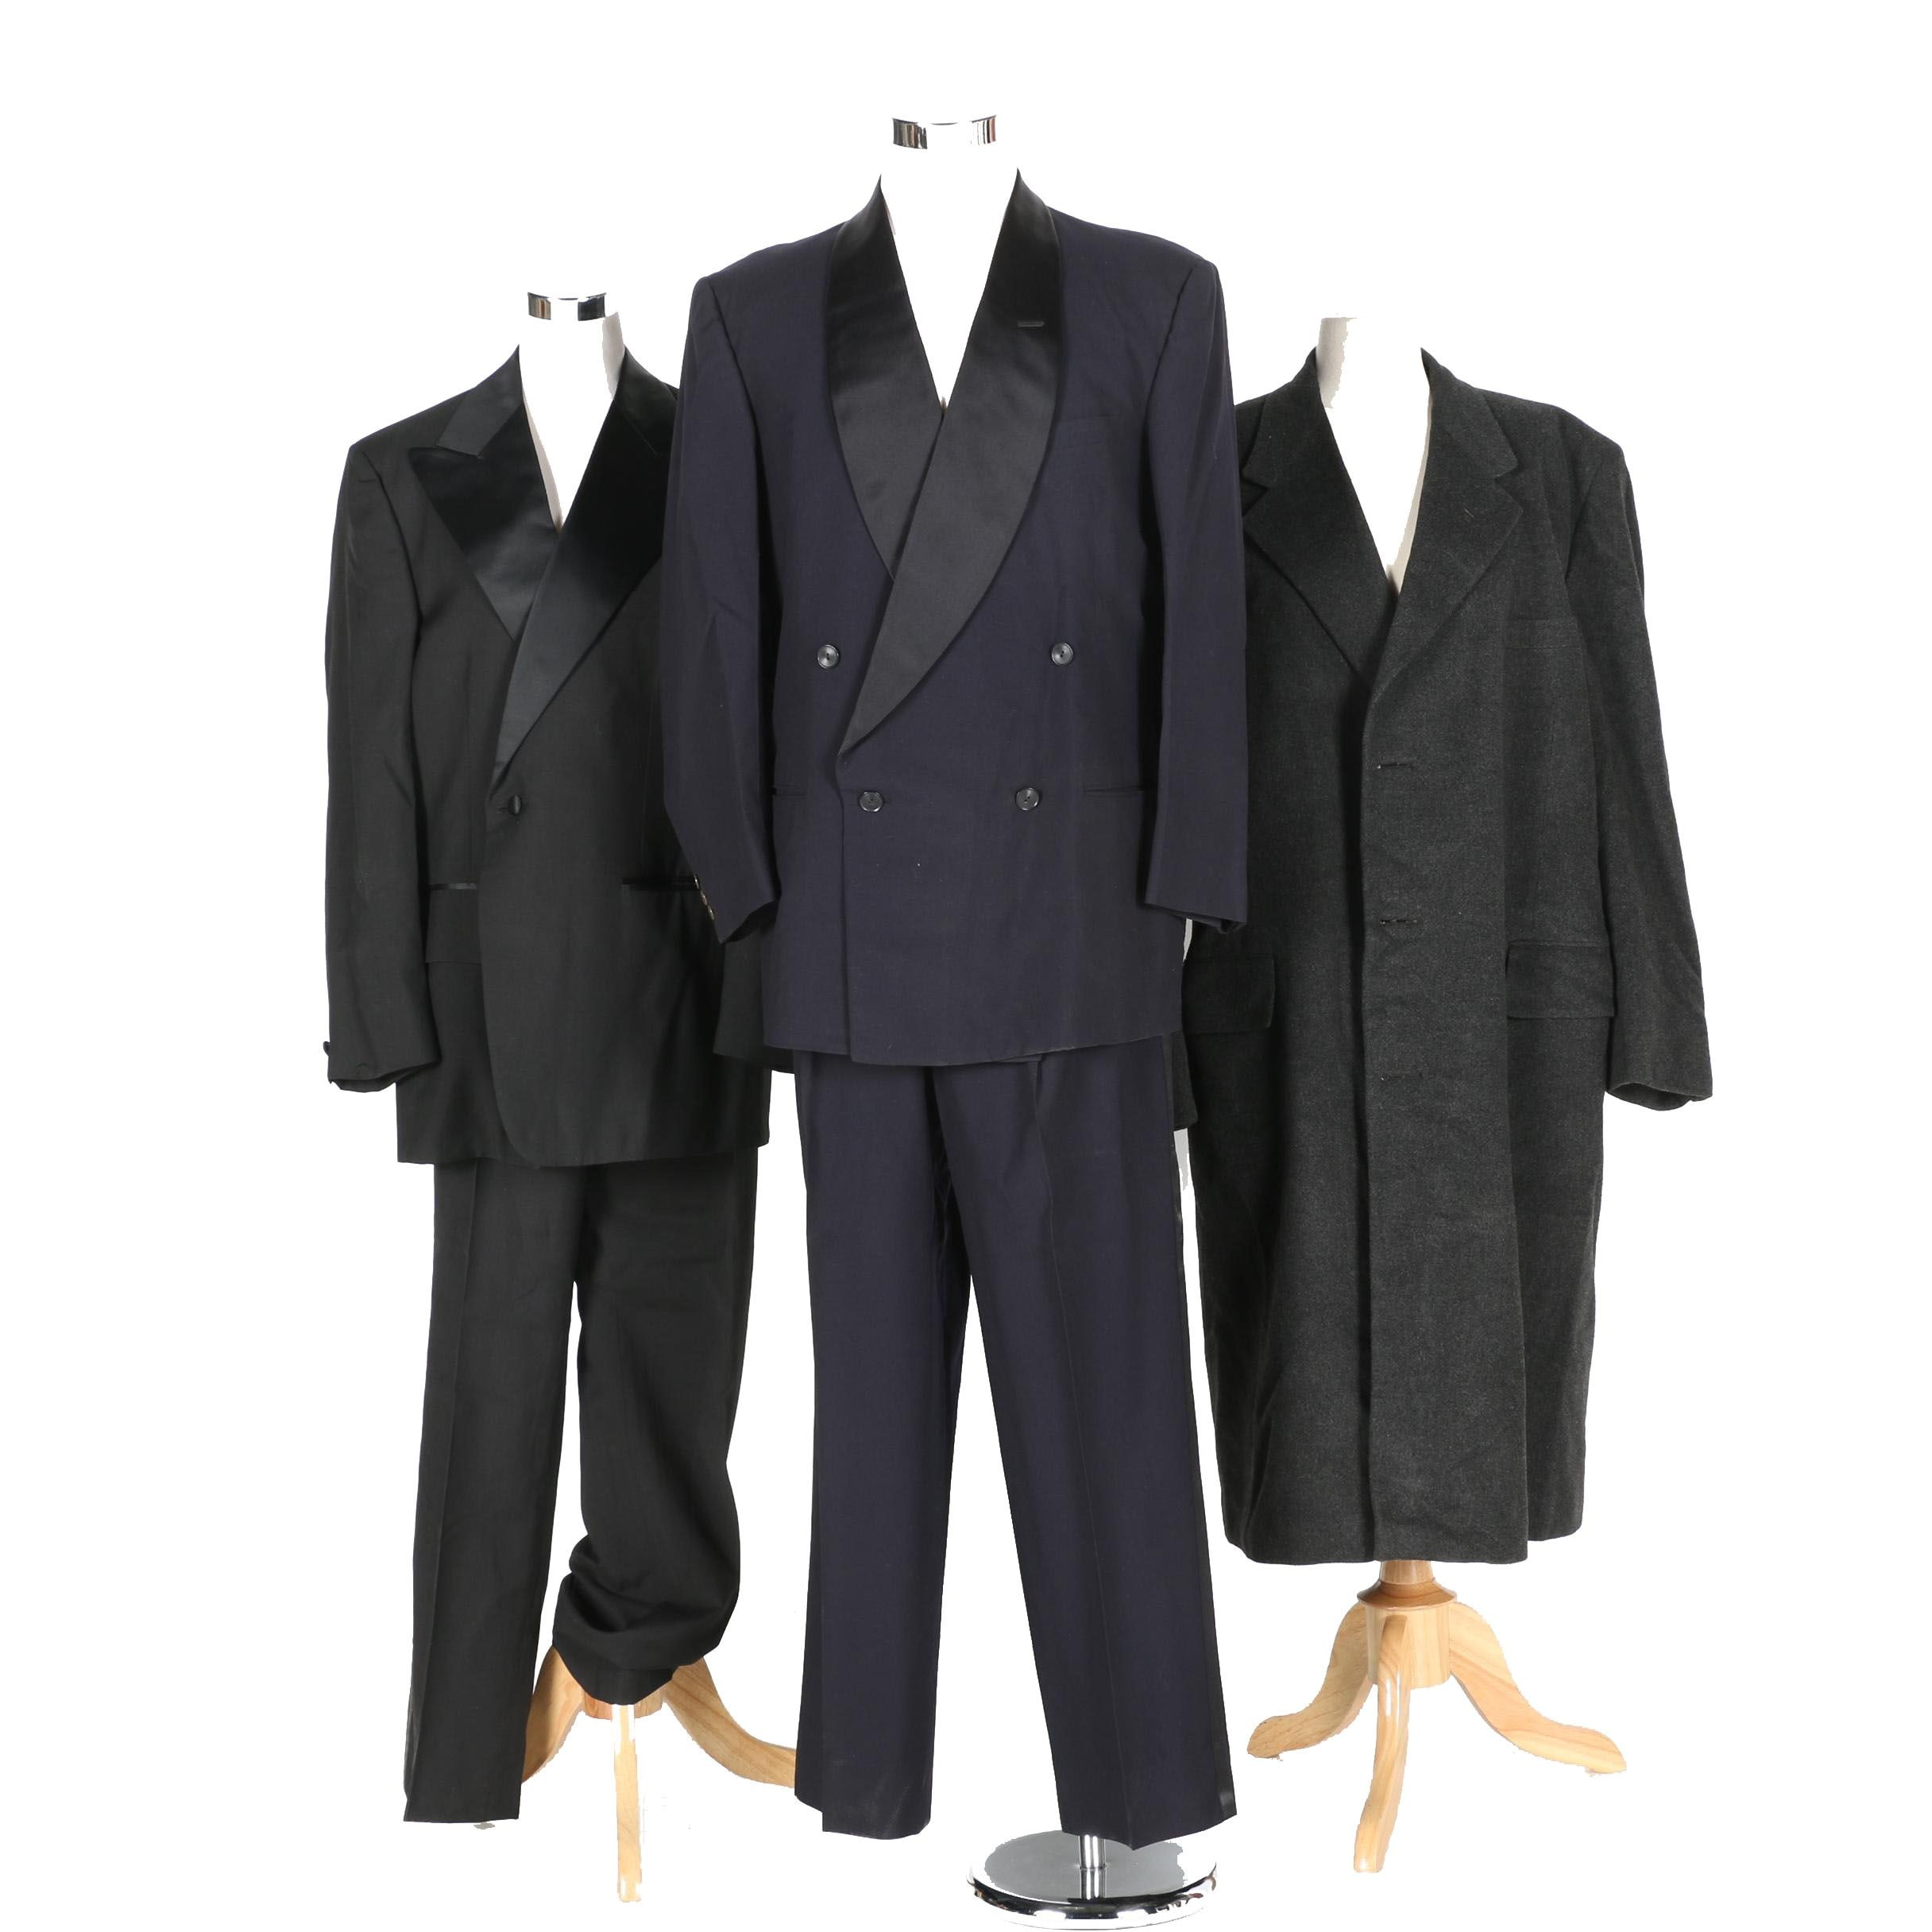 Men's Formal Wear Including a Wool and Cashmere Overcoat